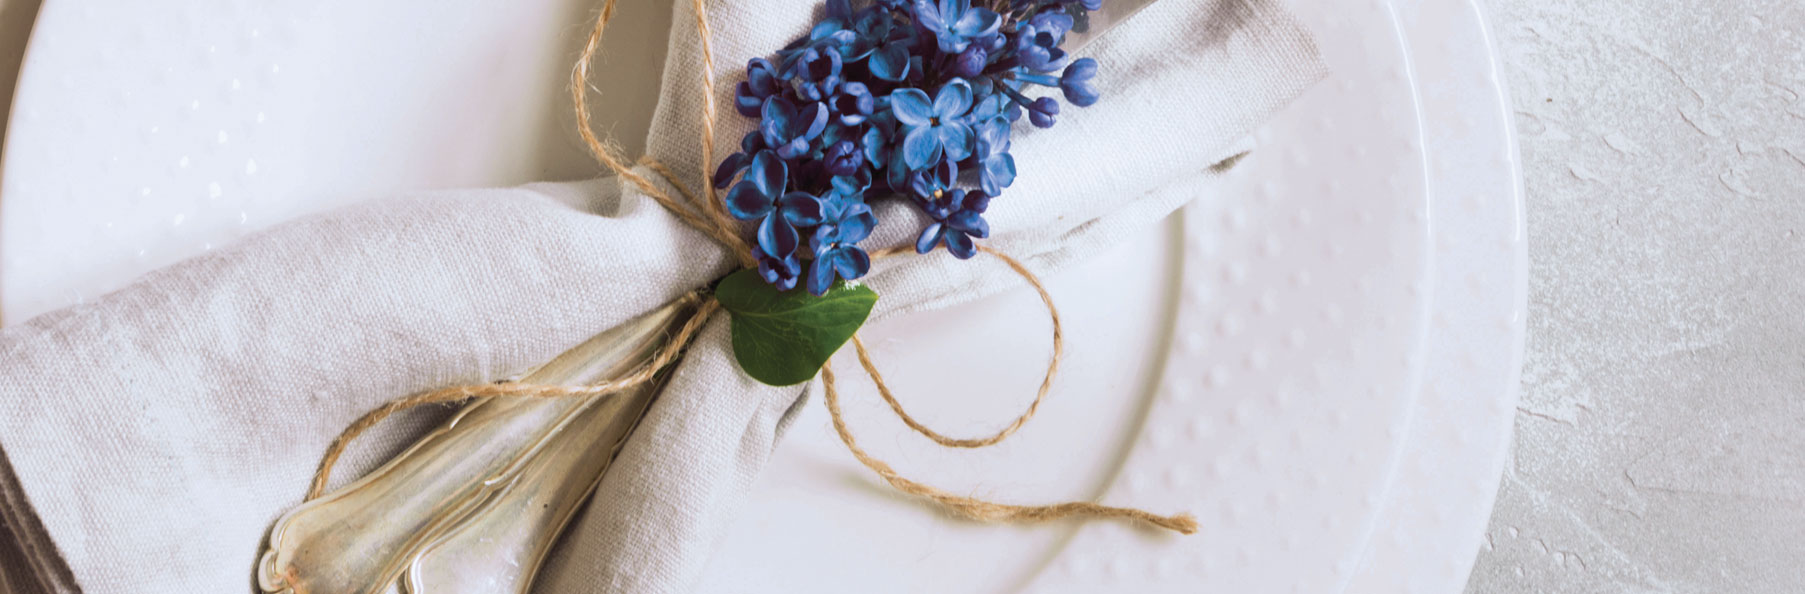 A close up photo of a plate with silverware napkin and flower